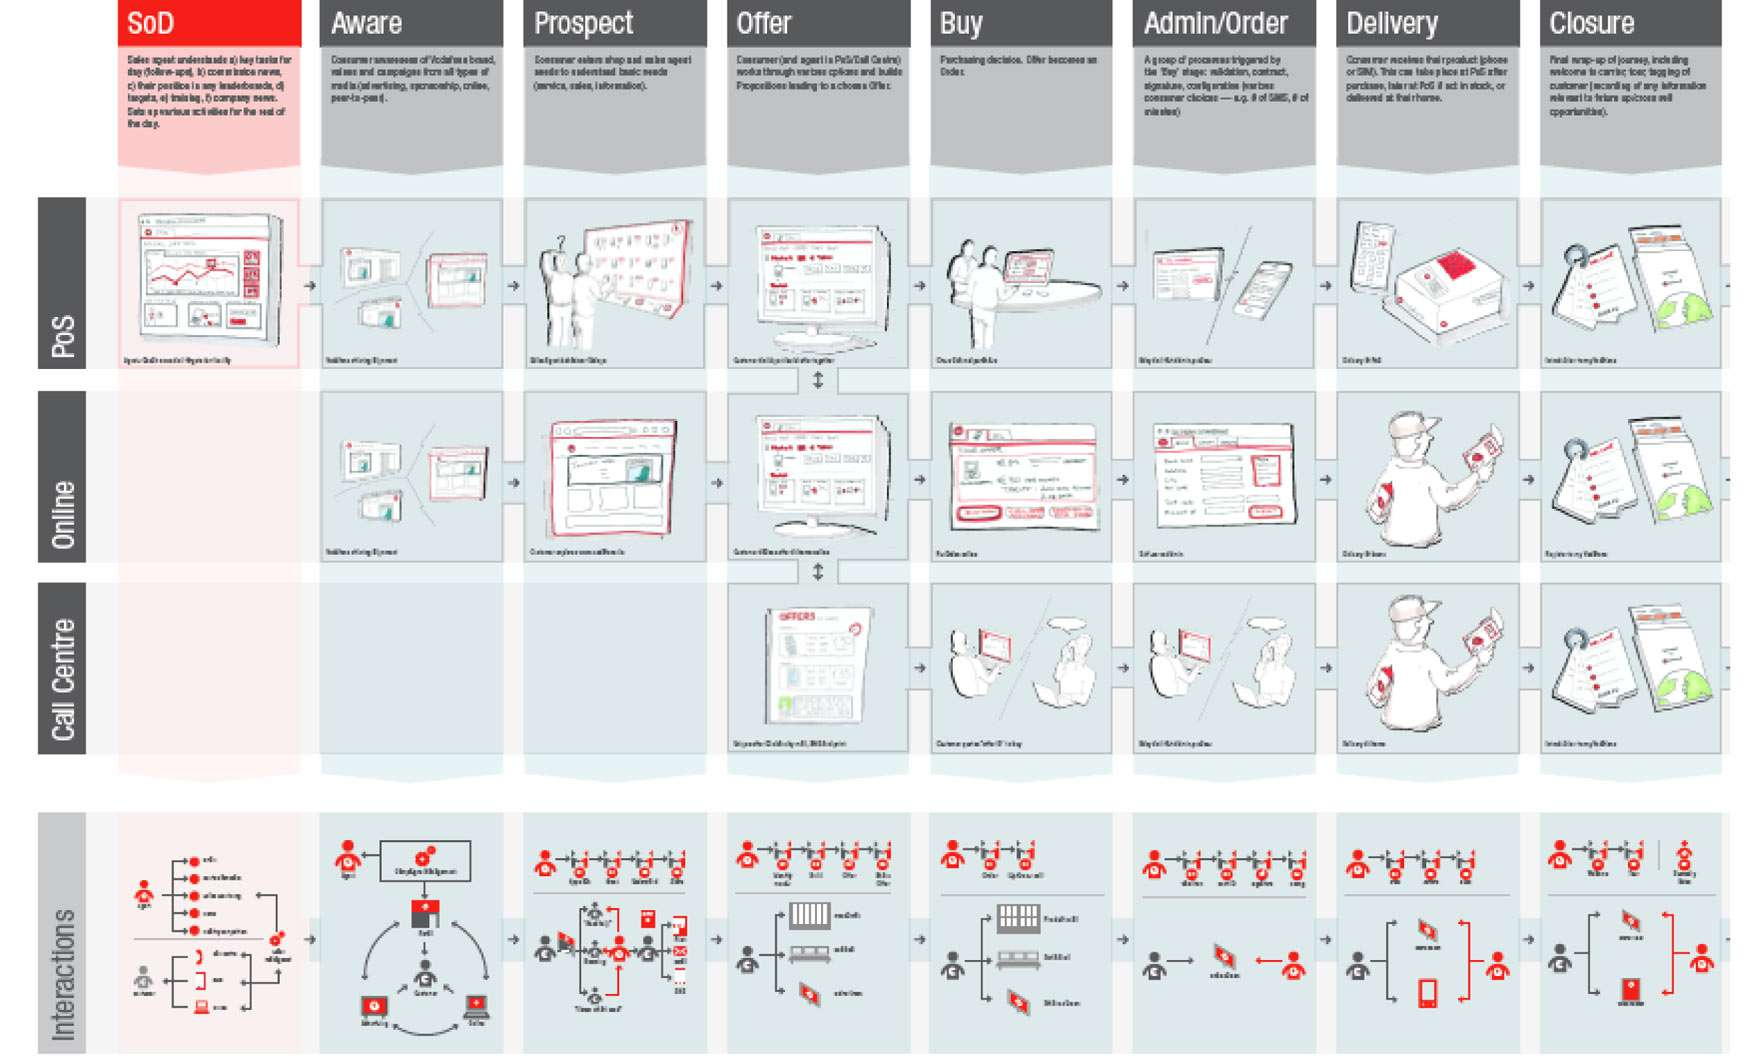 Service design liveworkstudio the service blueprint enables organisations to see how channels must work together to enable a great service experience malvernweather Choice Image